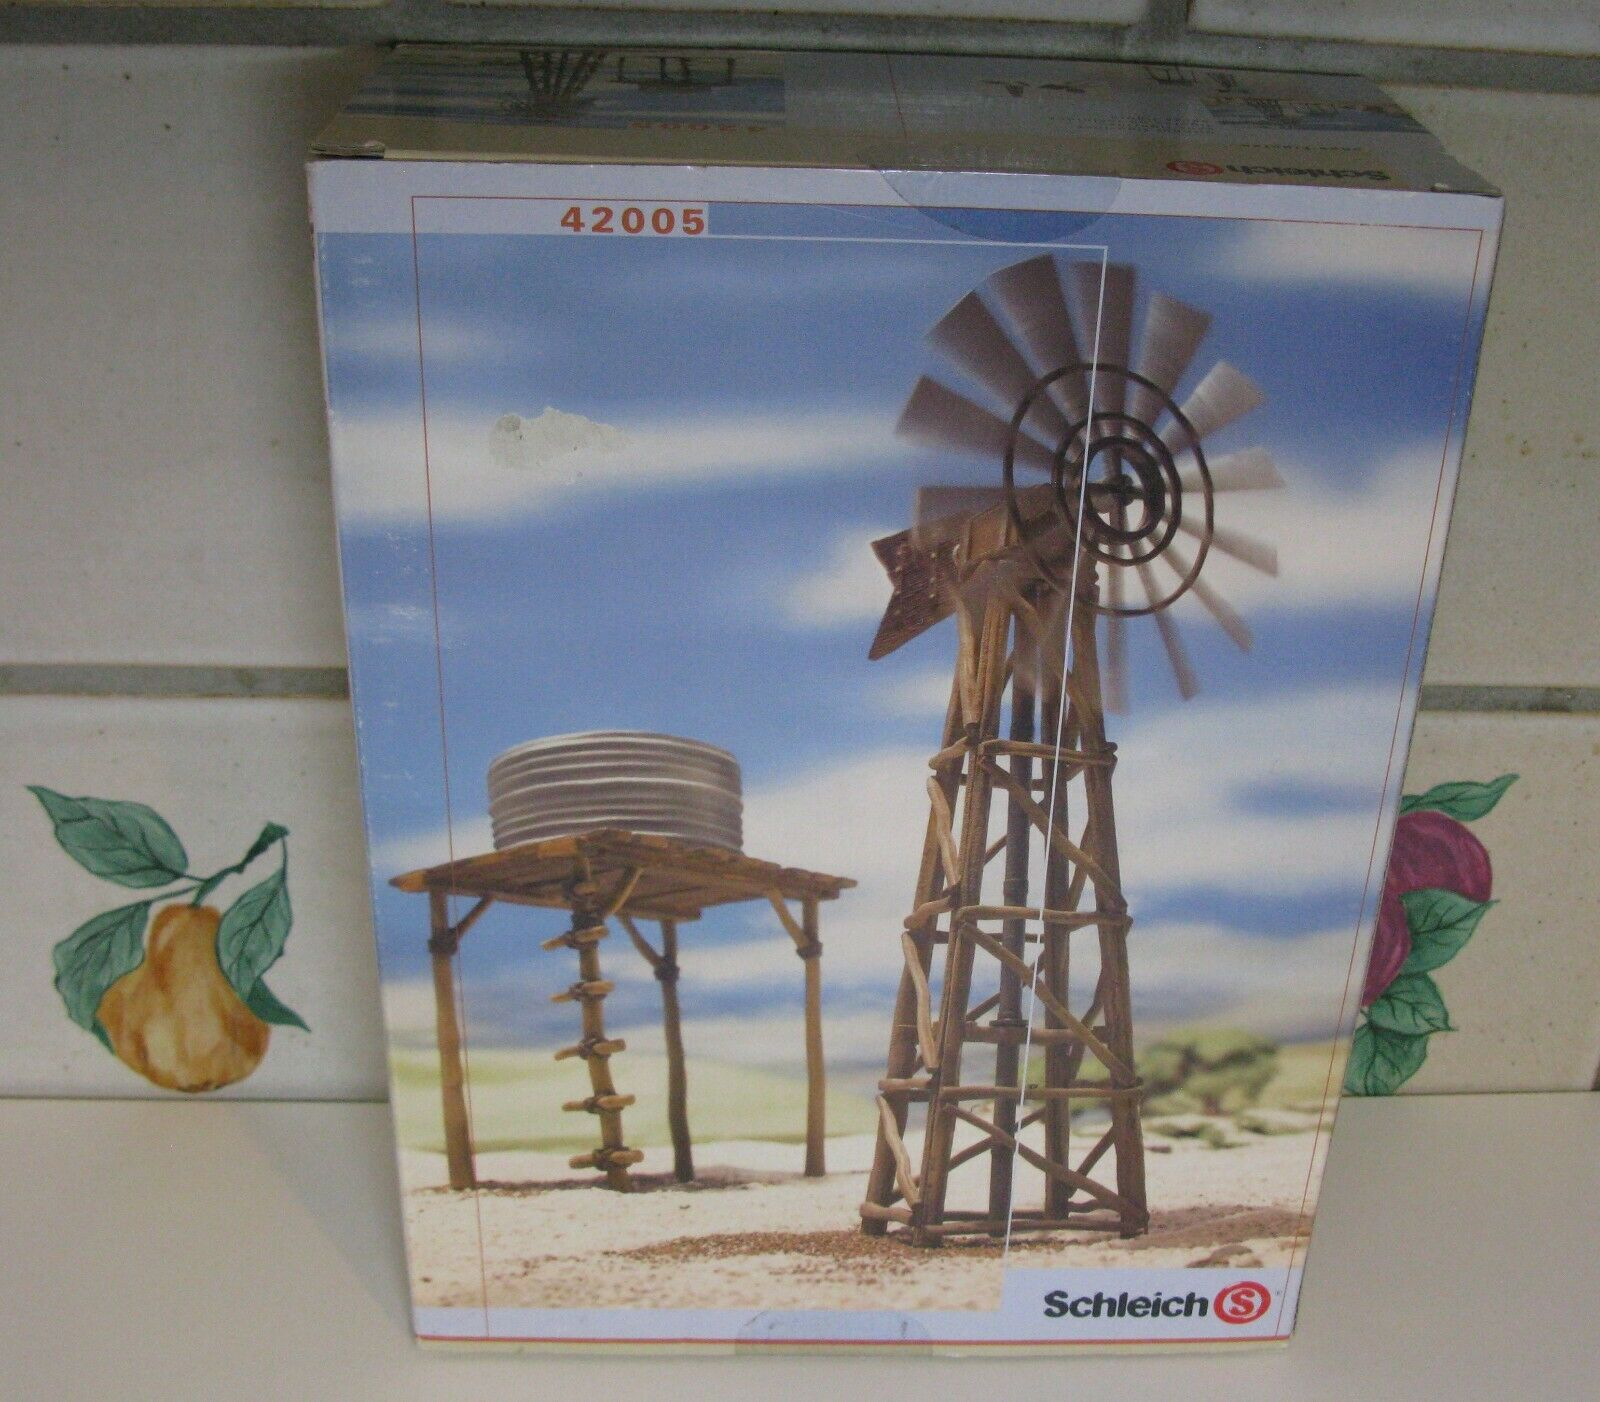 Schleich Water Pump Station and Windmill #42005 (PARTS STILL SEALED IN PLASTIC)